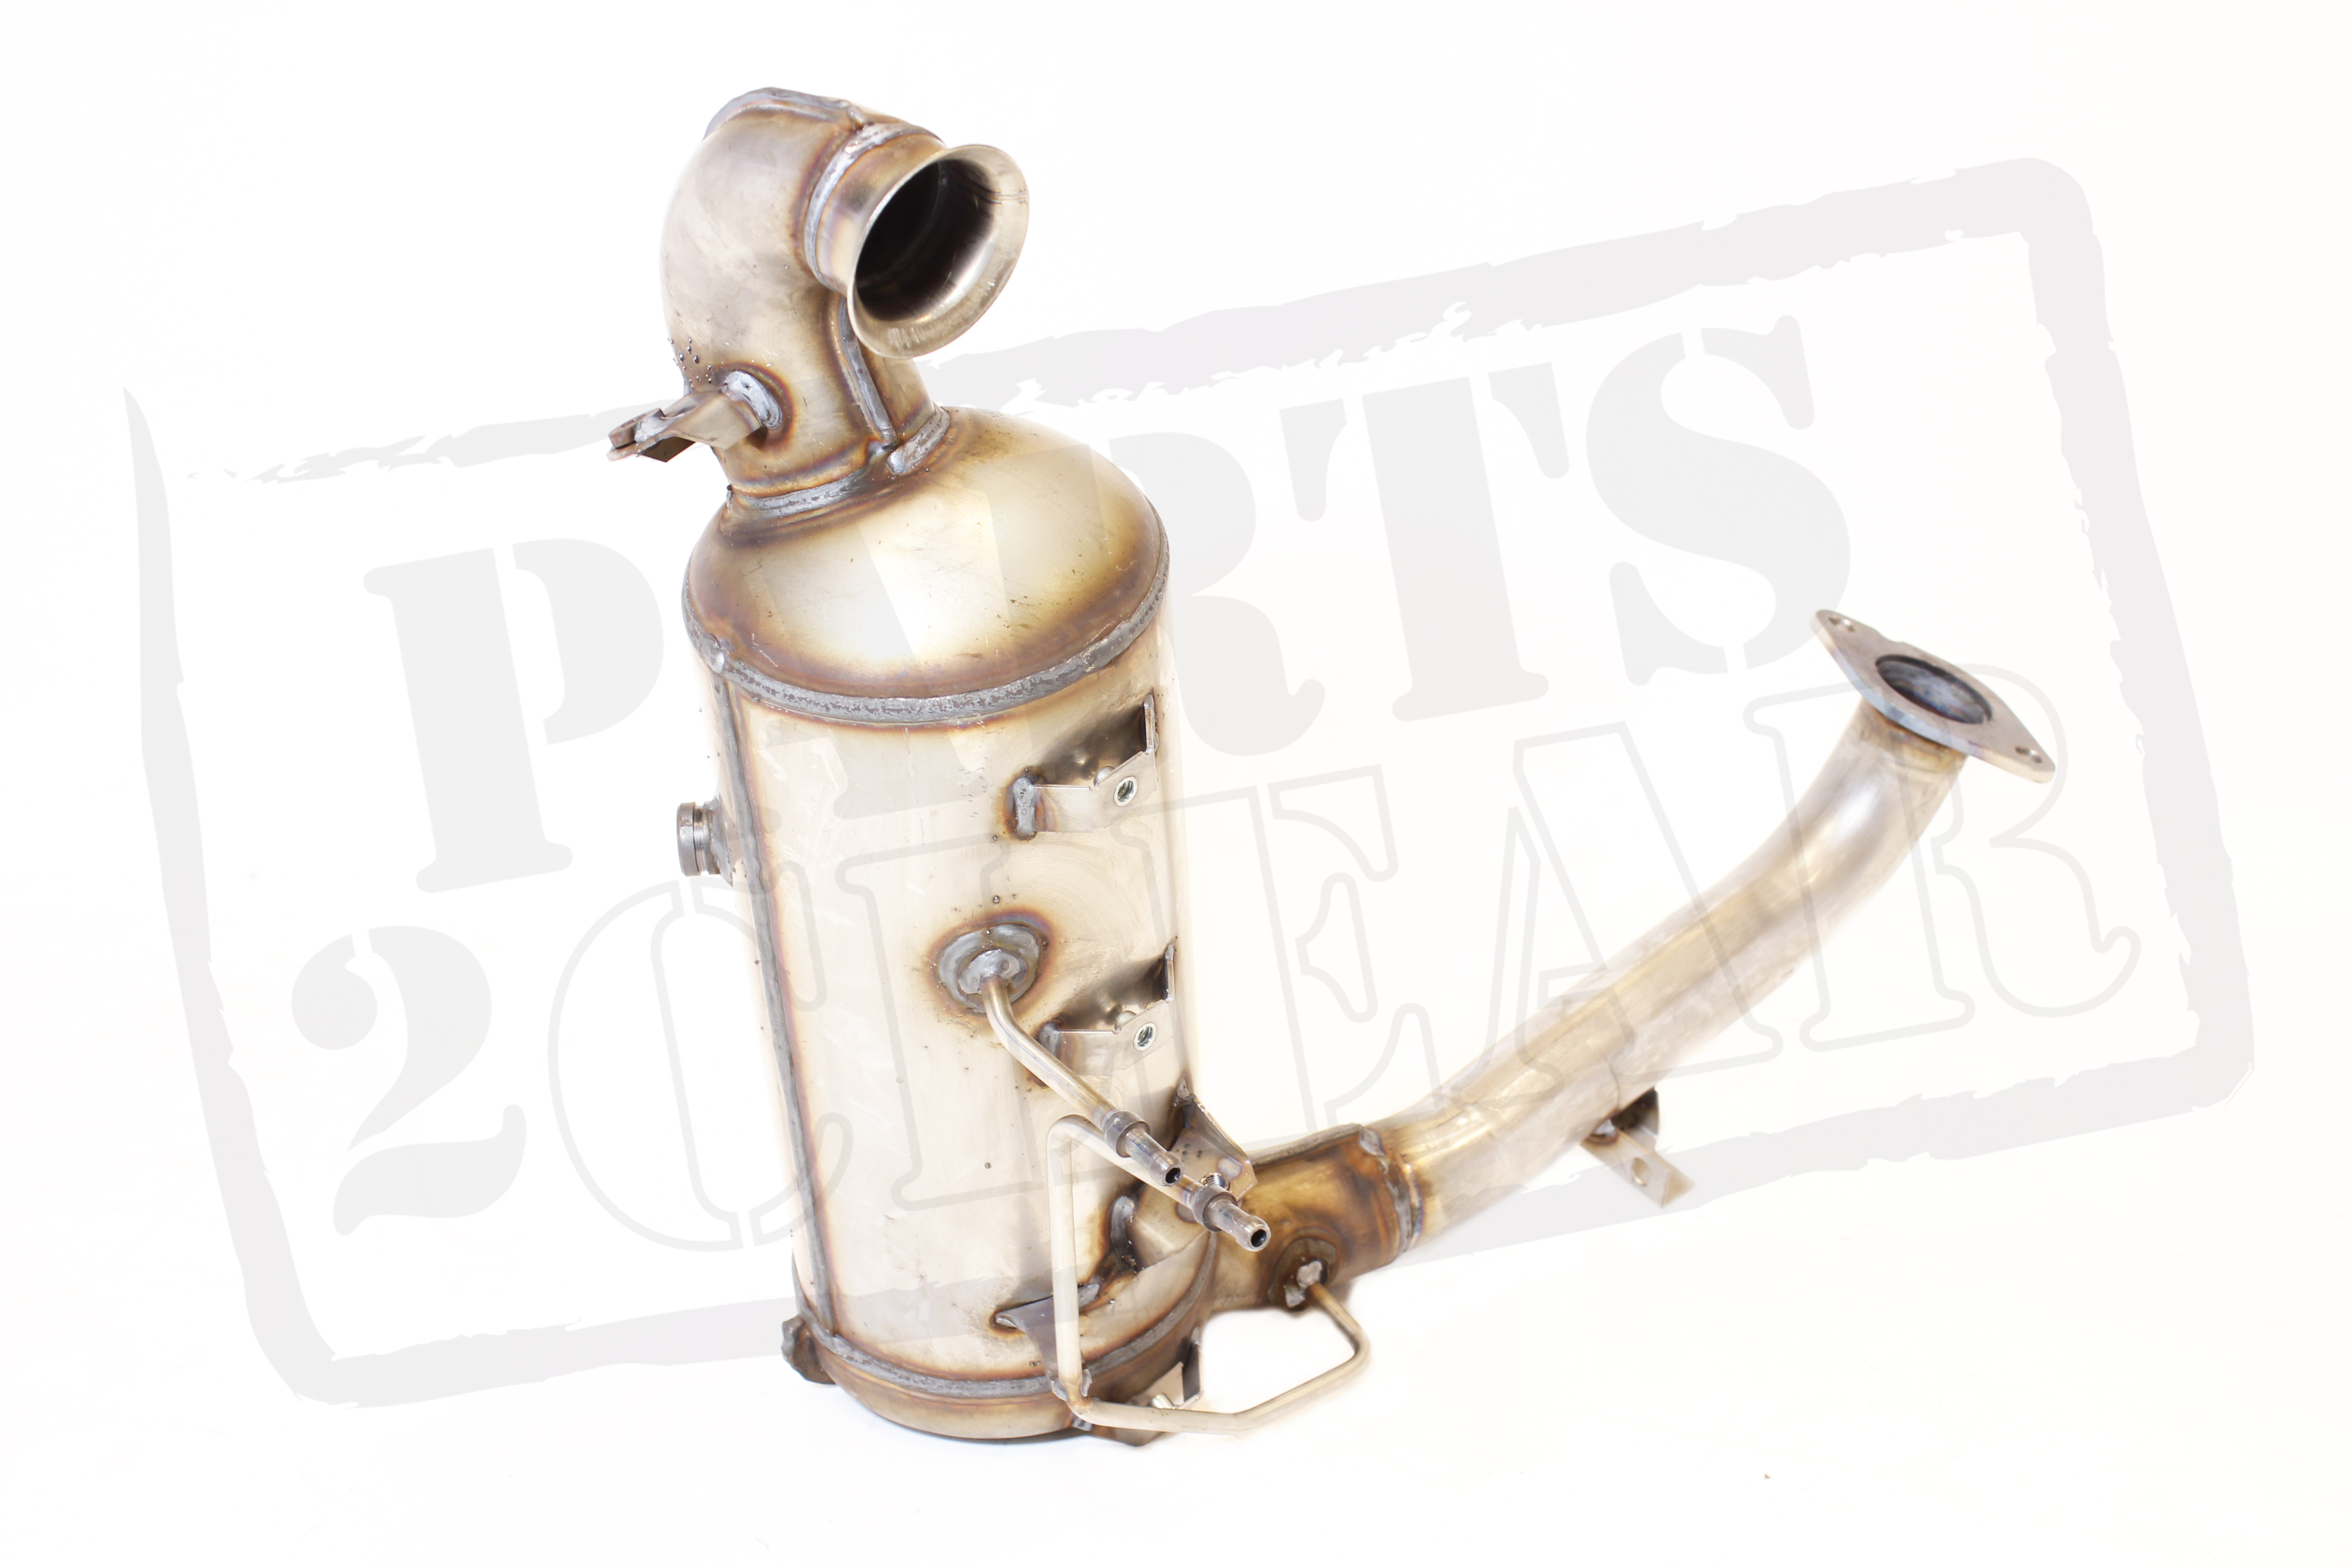 mazda 3 1.6 di cat + dpf diesel particulate filter soot oem new 1.6d